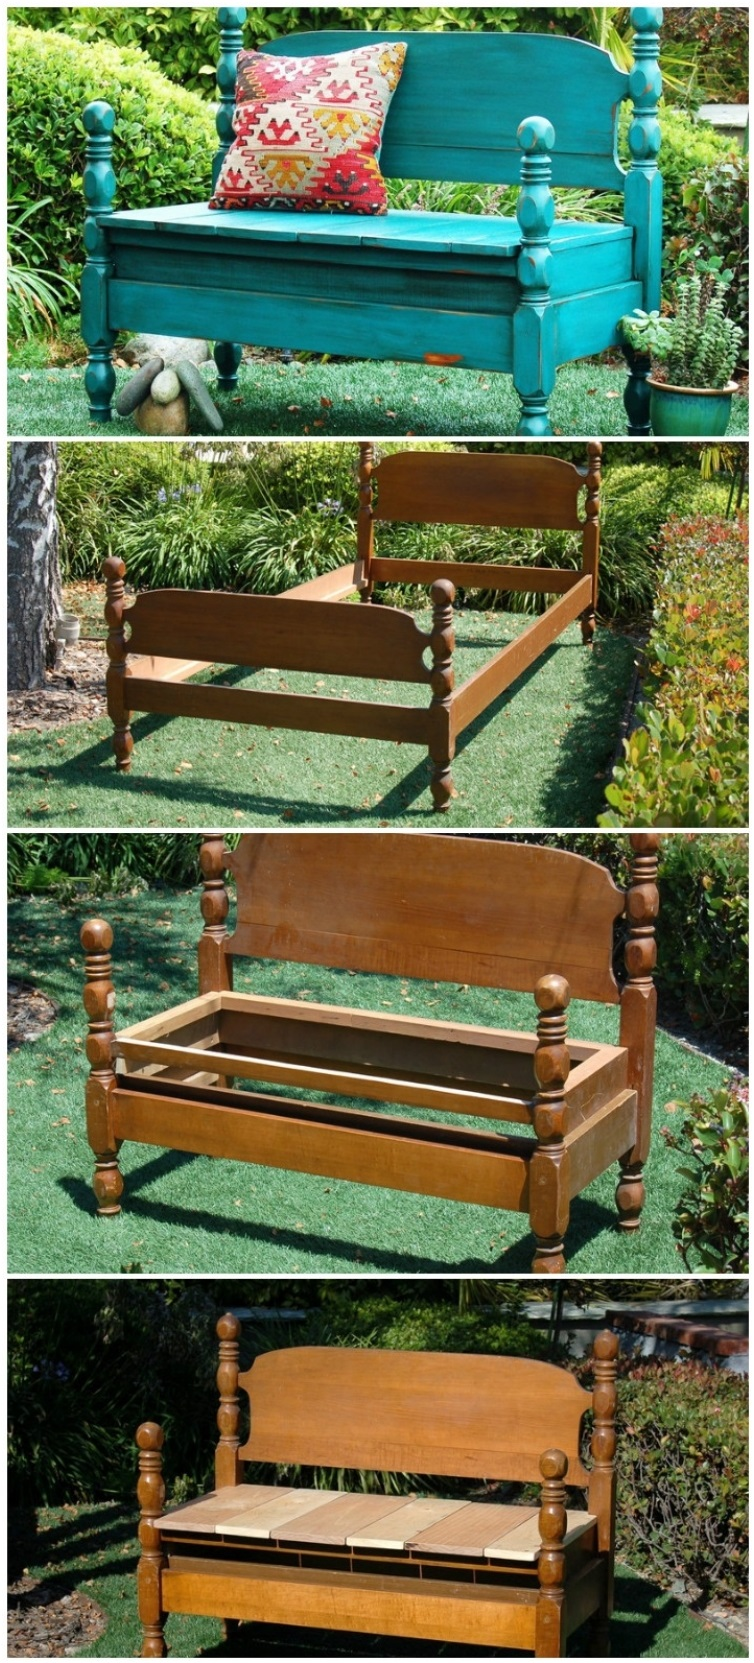 28 Diy S To Repurpose Old Furniture Page 8 Of 29 Ritely